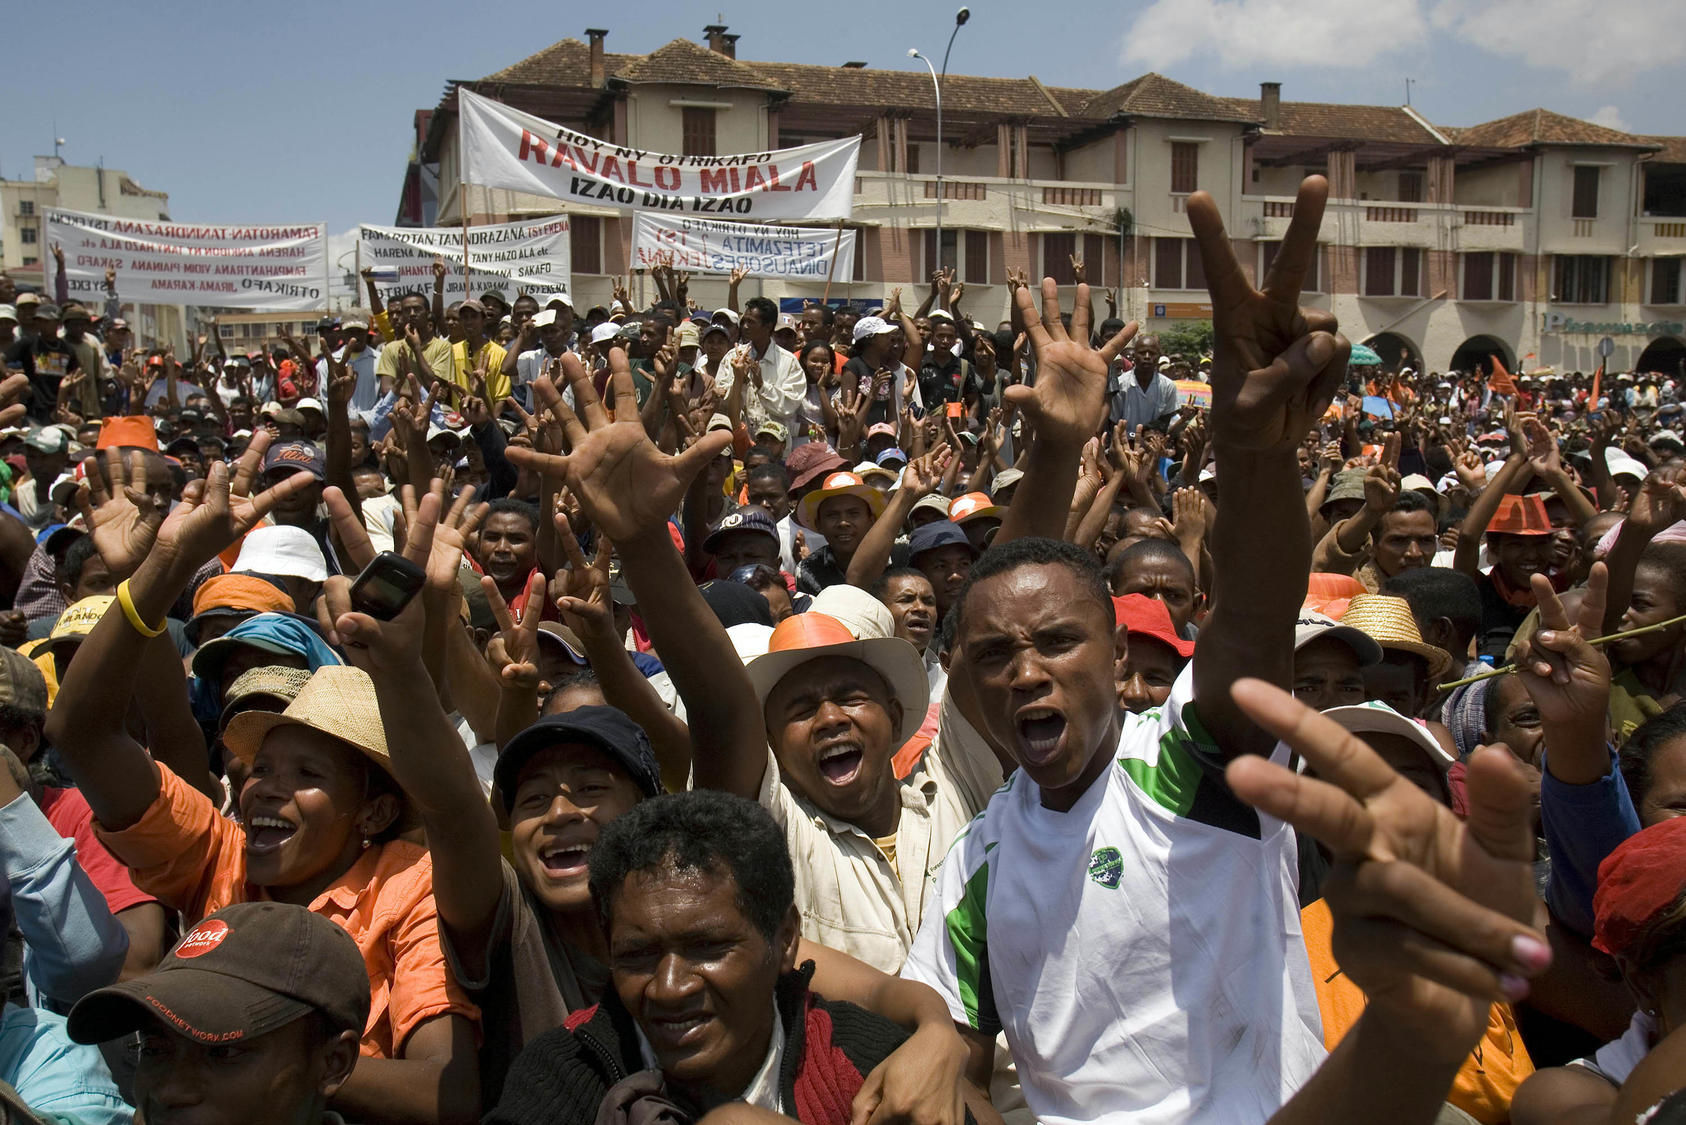 Opposition supporters chanted during a protest against the regime in Antananarivo, Madagascar on Saturday, Jan. 31, 2009. As of Saturday, this exotic island, home to 300 species of frogs, 75 species of chameleons and three dozen species of lemurs, also has two species of politicians claiming to run the country.